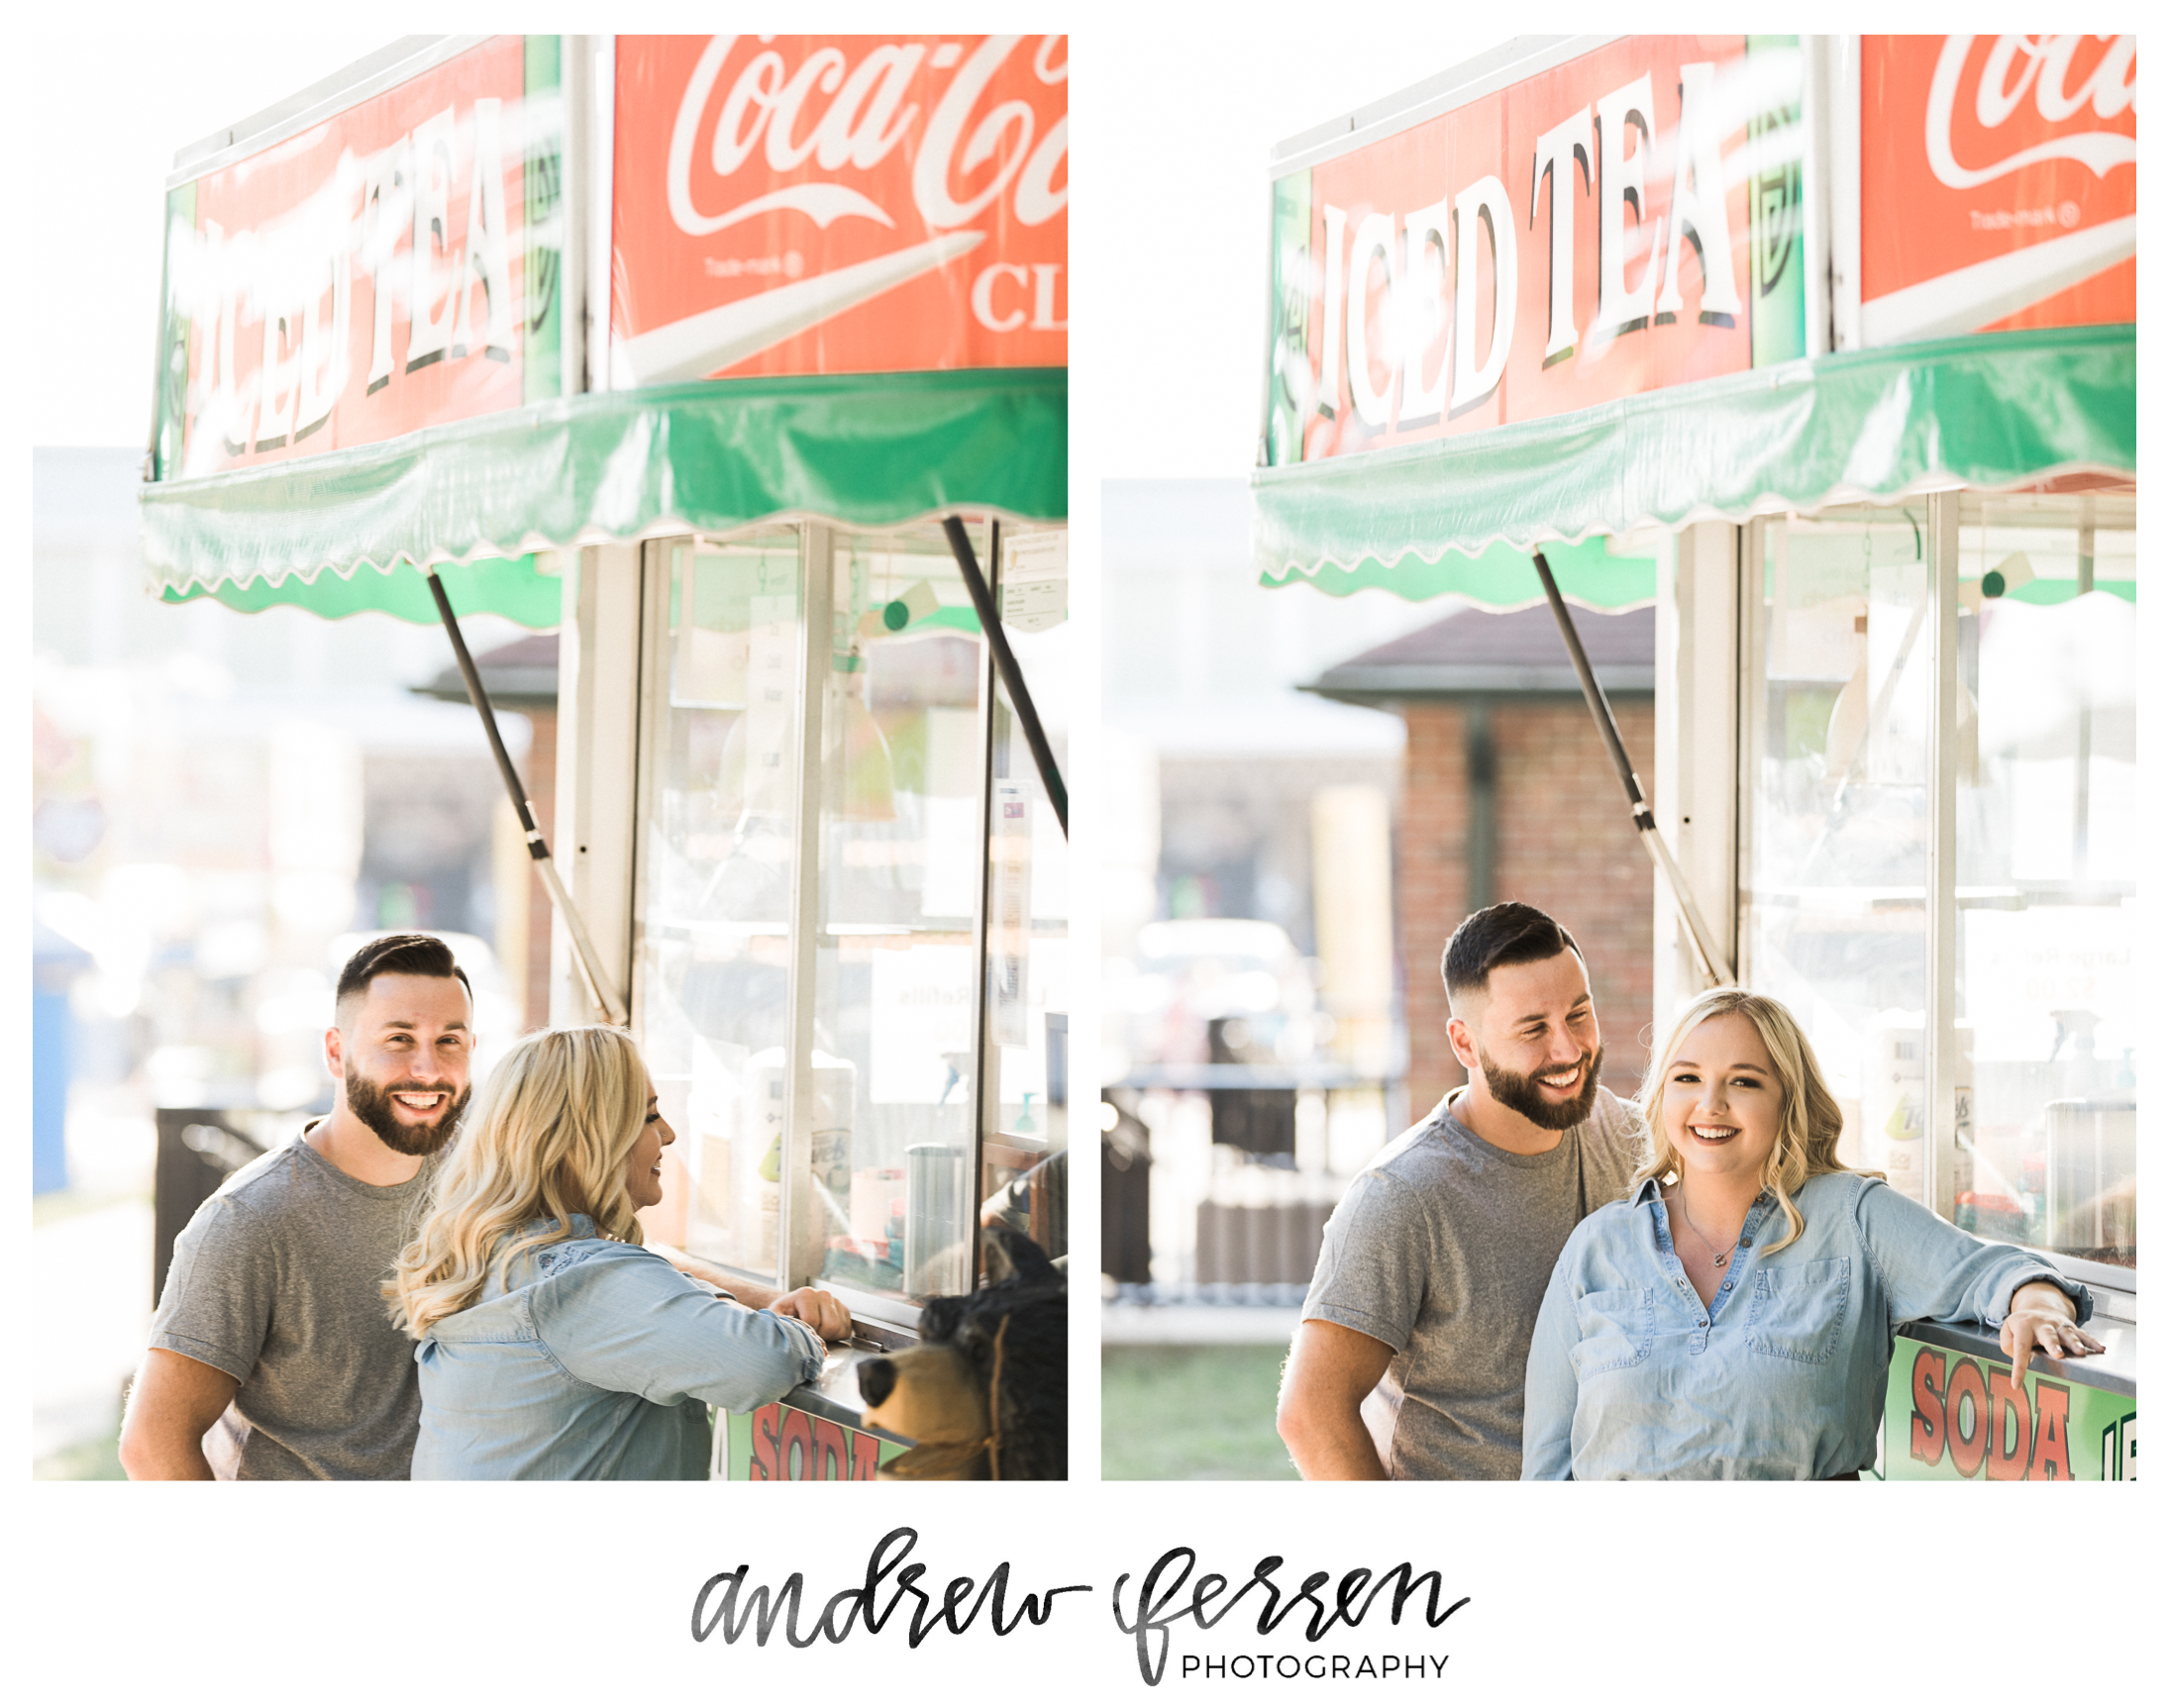 1 Iowa State Fairgrounds Engagement Session Iowa Wedding Photographer Andrew Ferren Photography Pinterest.jpg